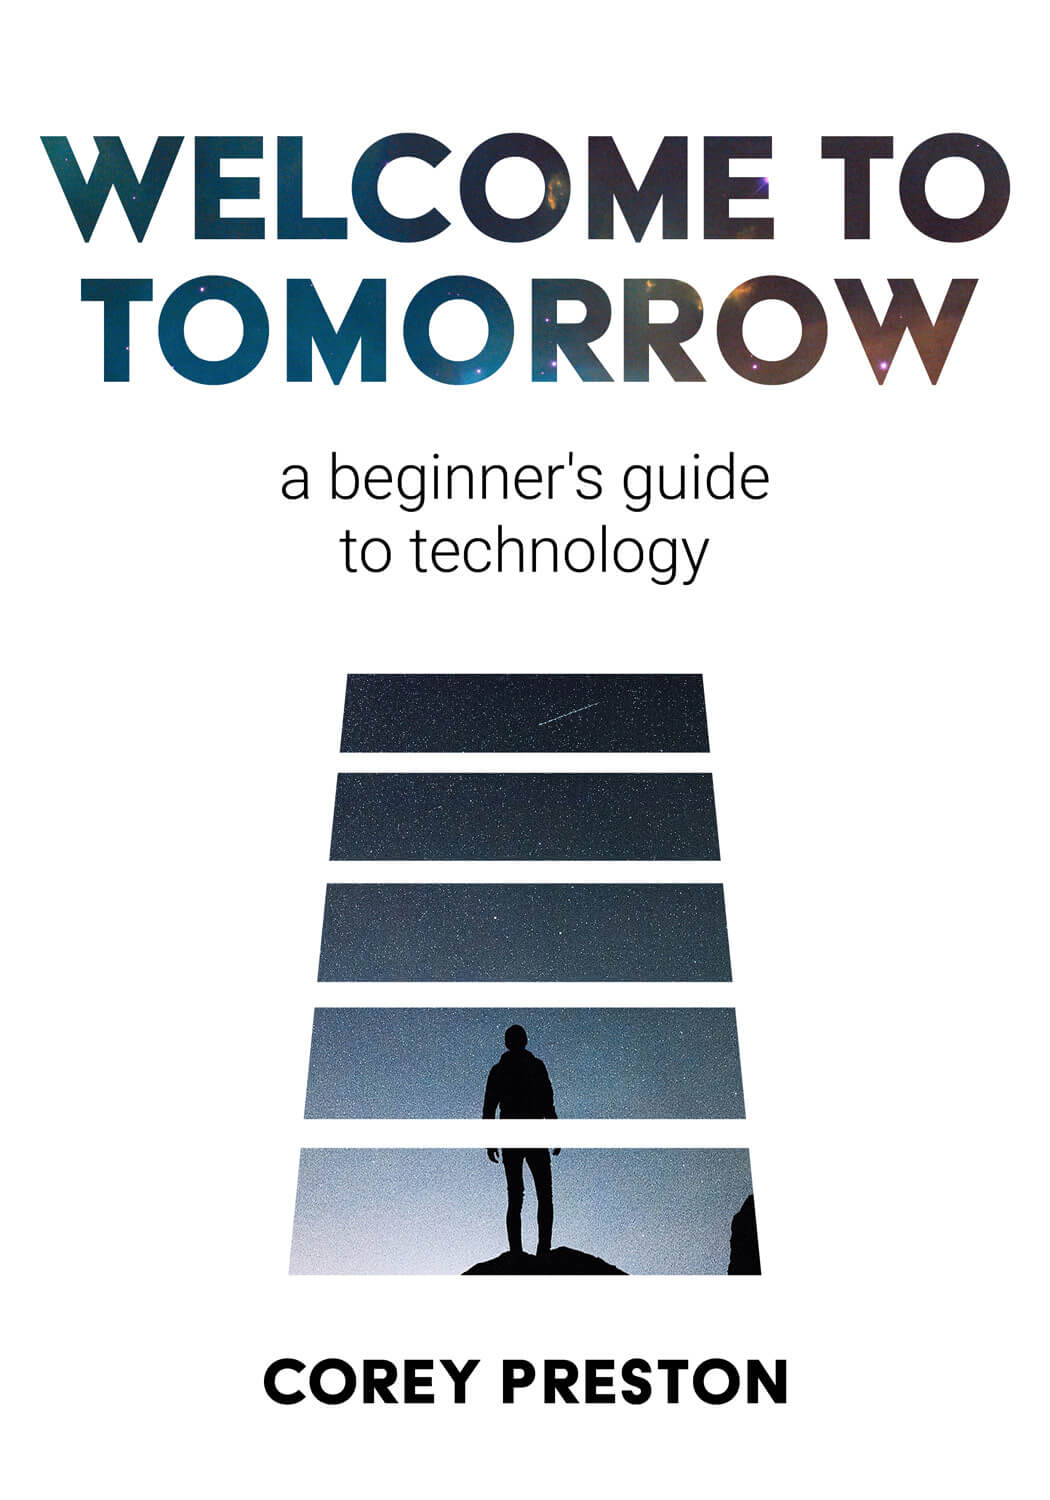 Welcome to Tomorrow a beginner's guide to technology